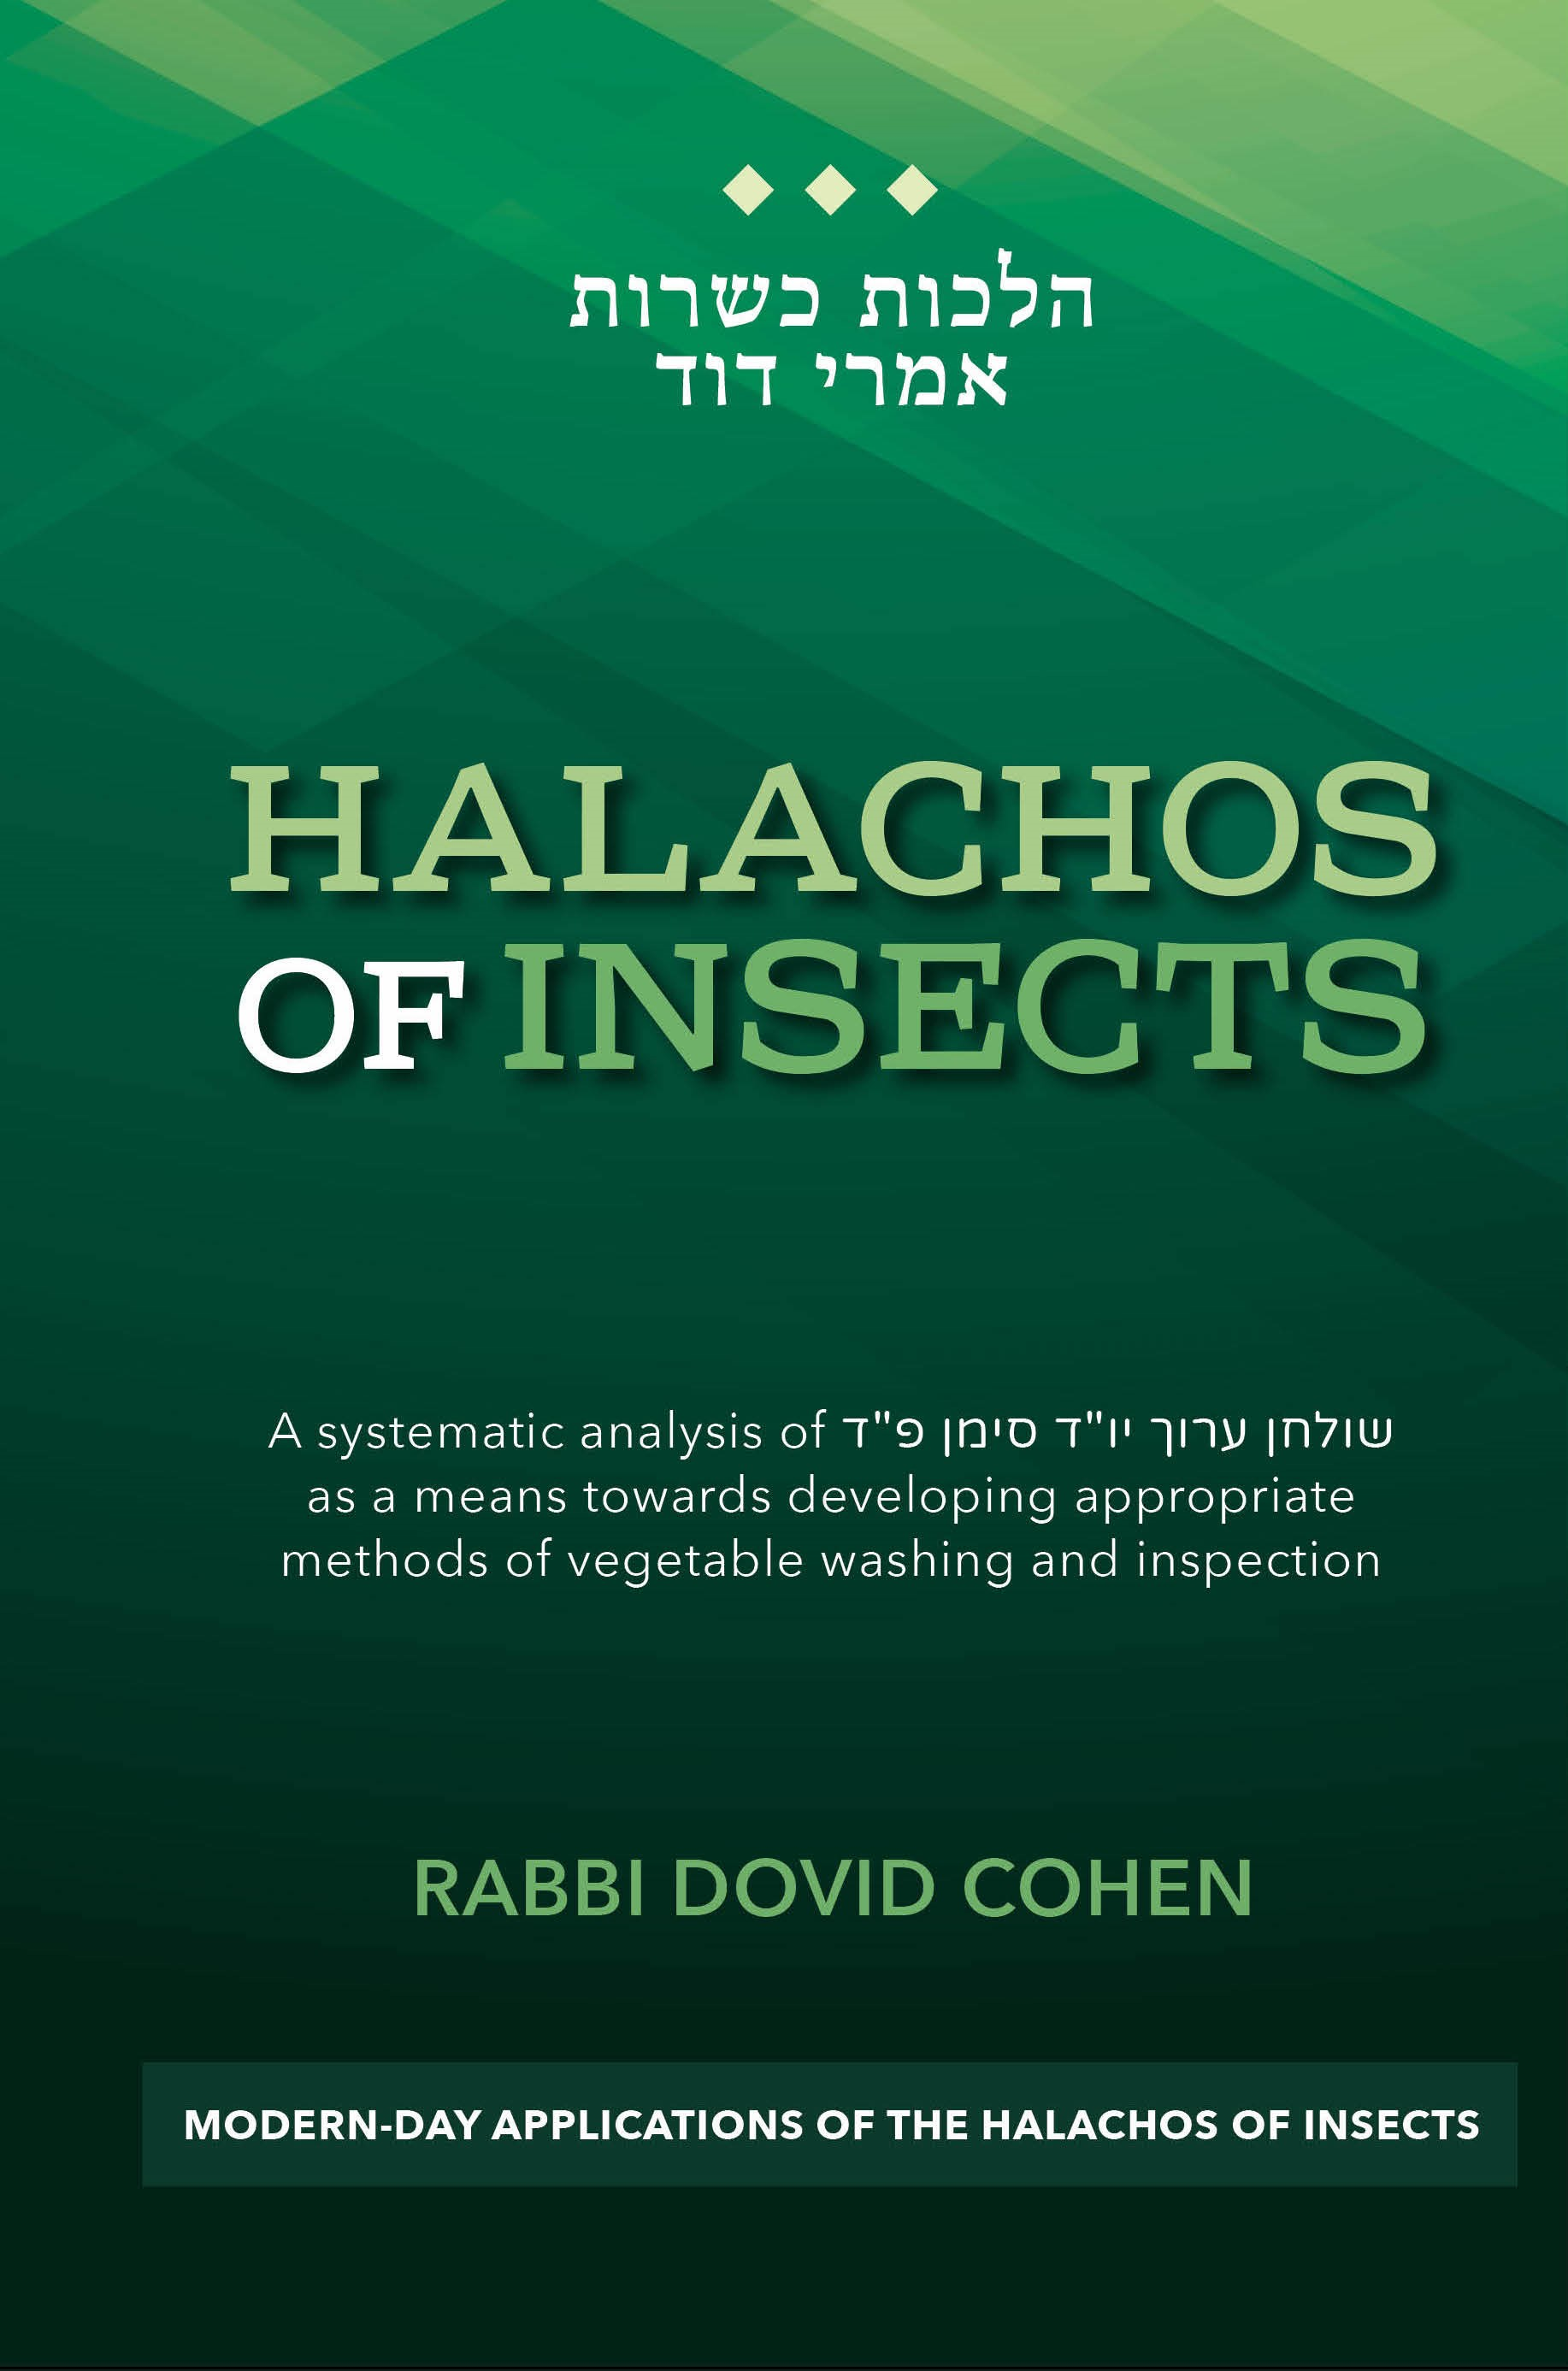 Halachos of Insects.jpg